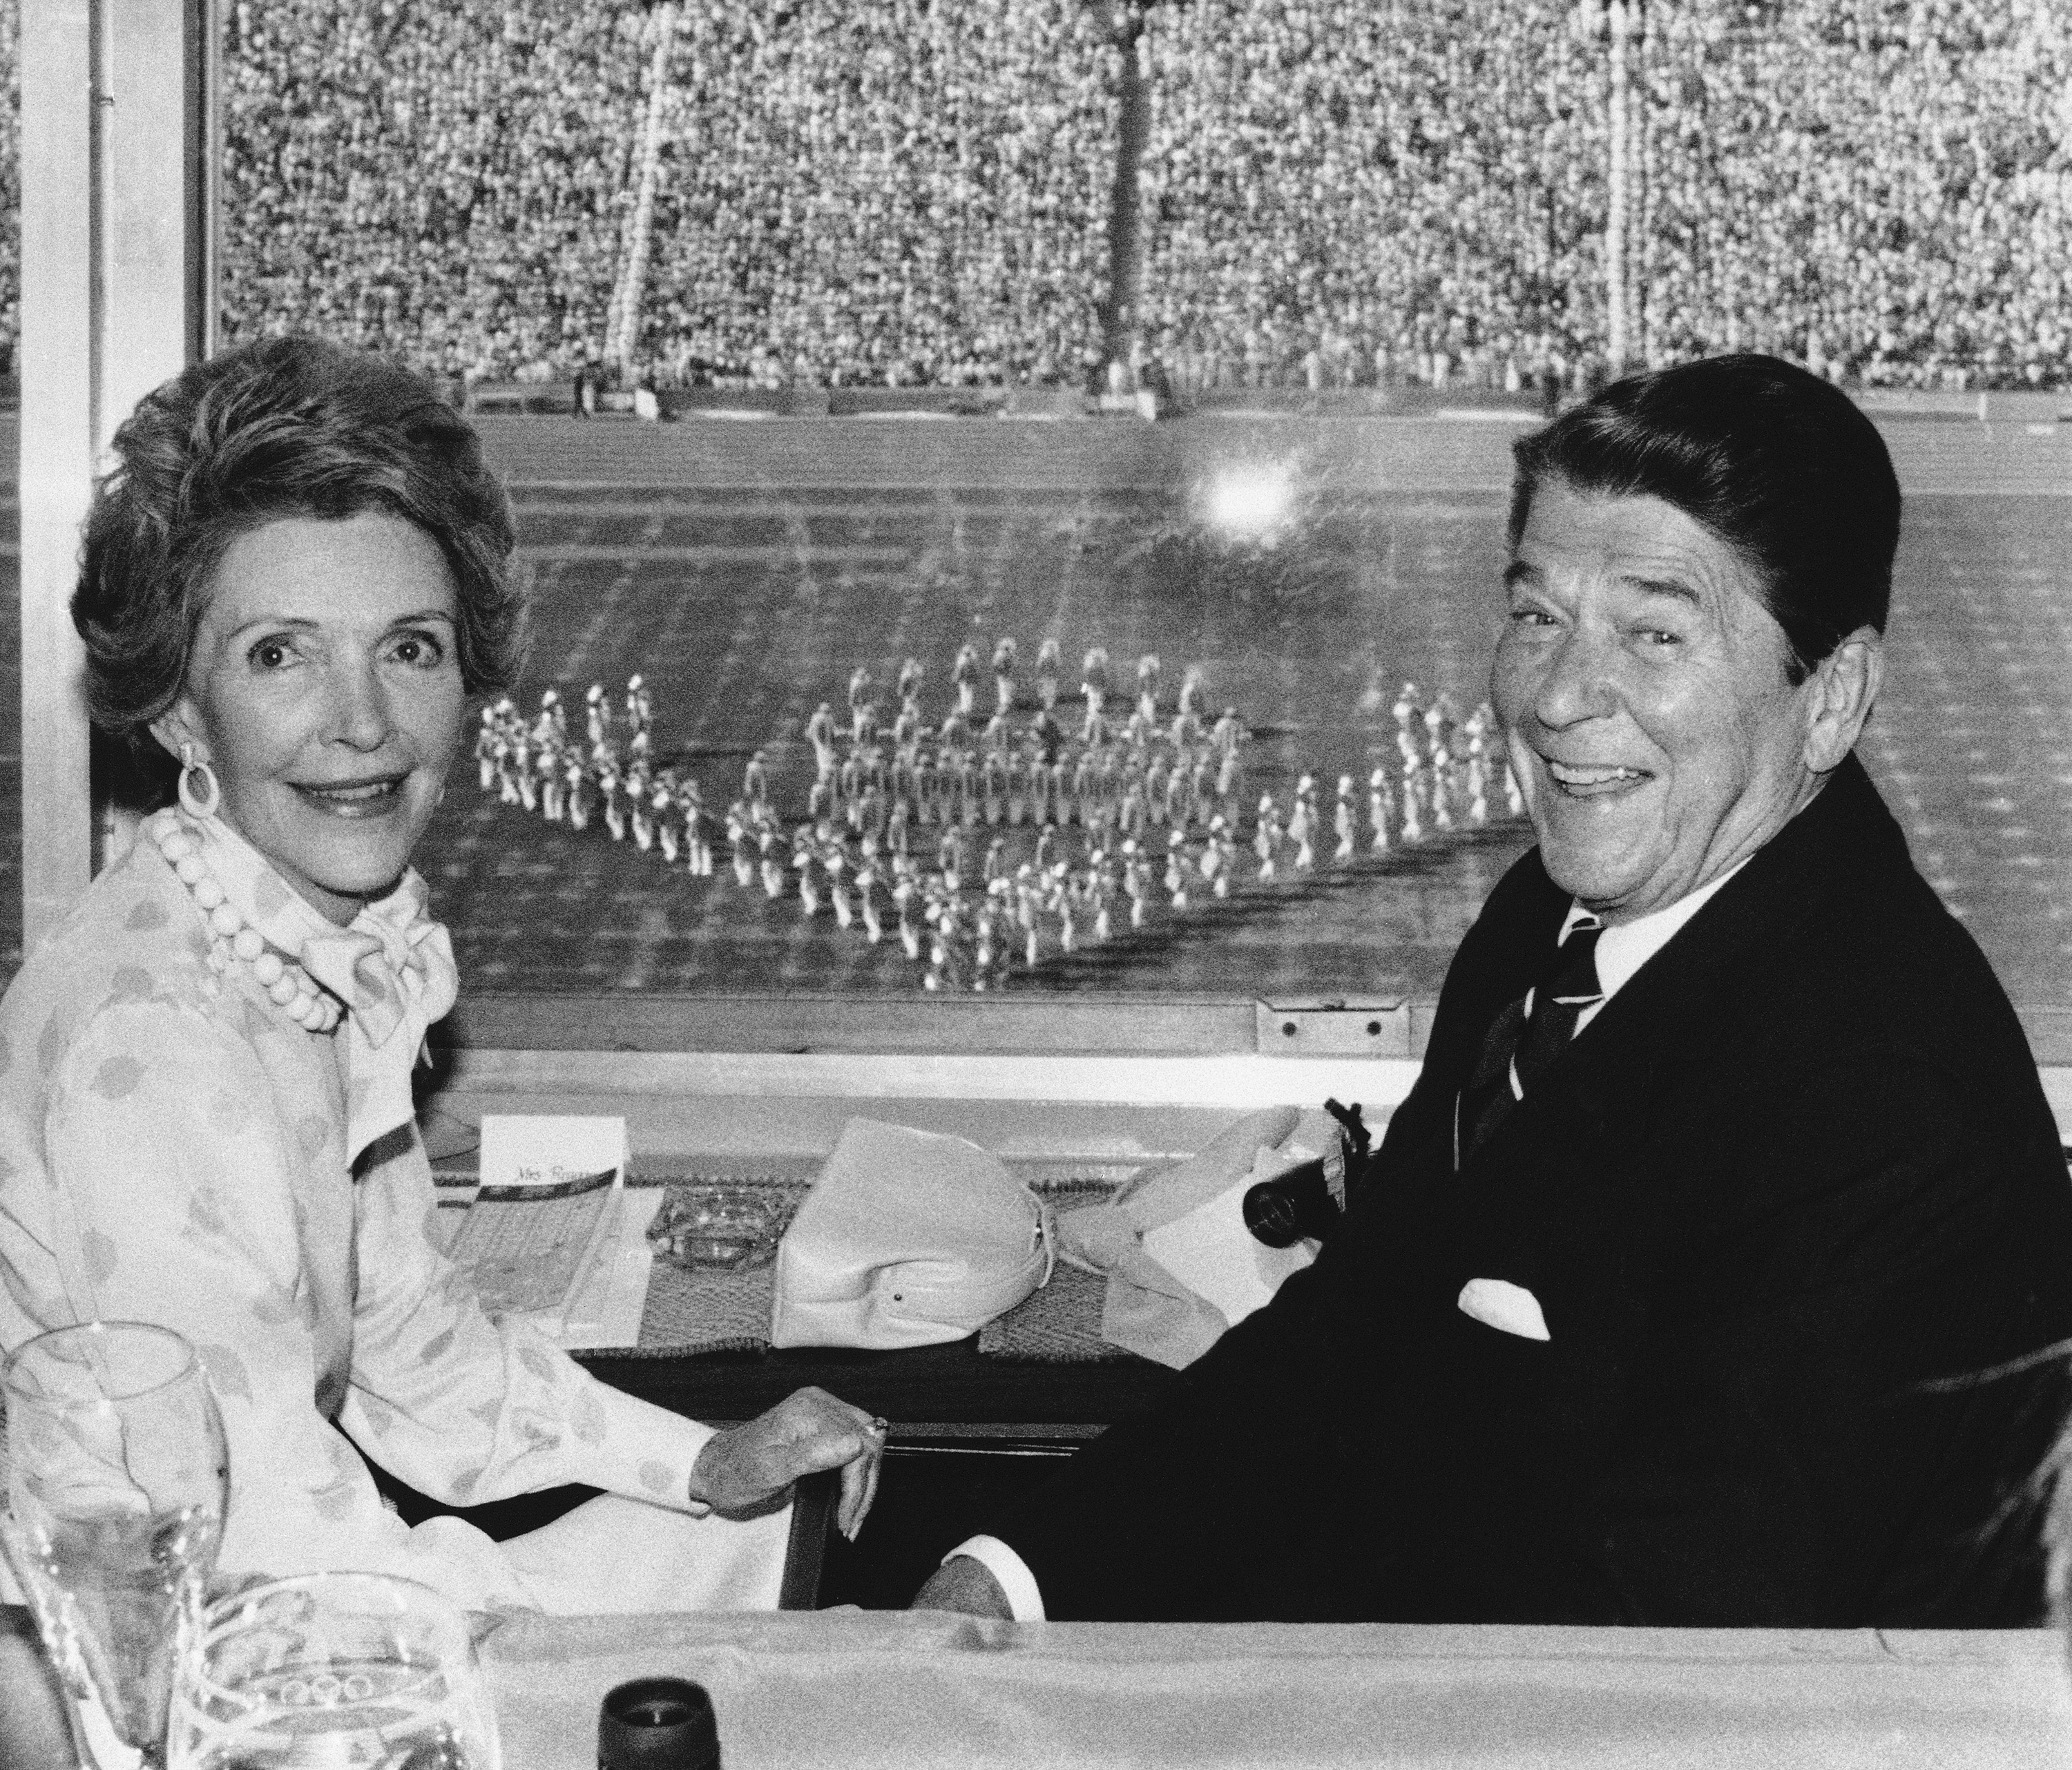 "<div class=""meta image-caption""><div class=""origin-logo origin-image ap""><span>AP</span></div><span class=""caption-text"">In this July 28, 1984 photo President Ronald Reagan and first lady Nancy Reagan enjoy the Opening Ceremonies of the 23rd Olympiad from their press box view in the Coliseum. (AP Photo)</span></div>"